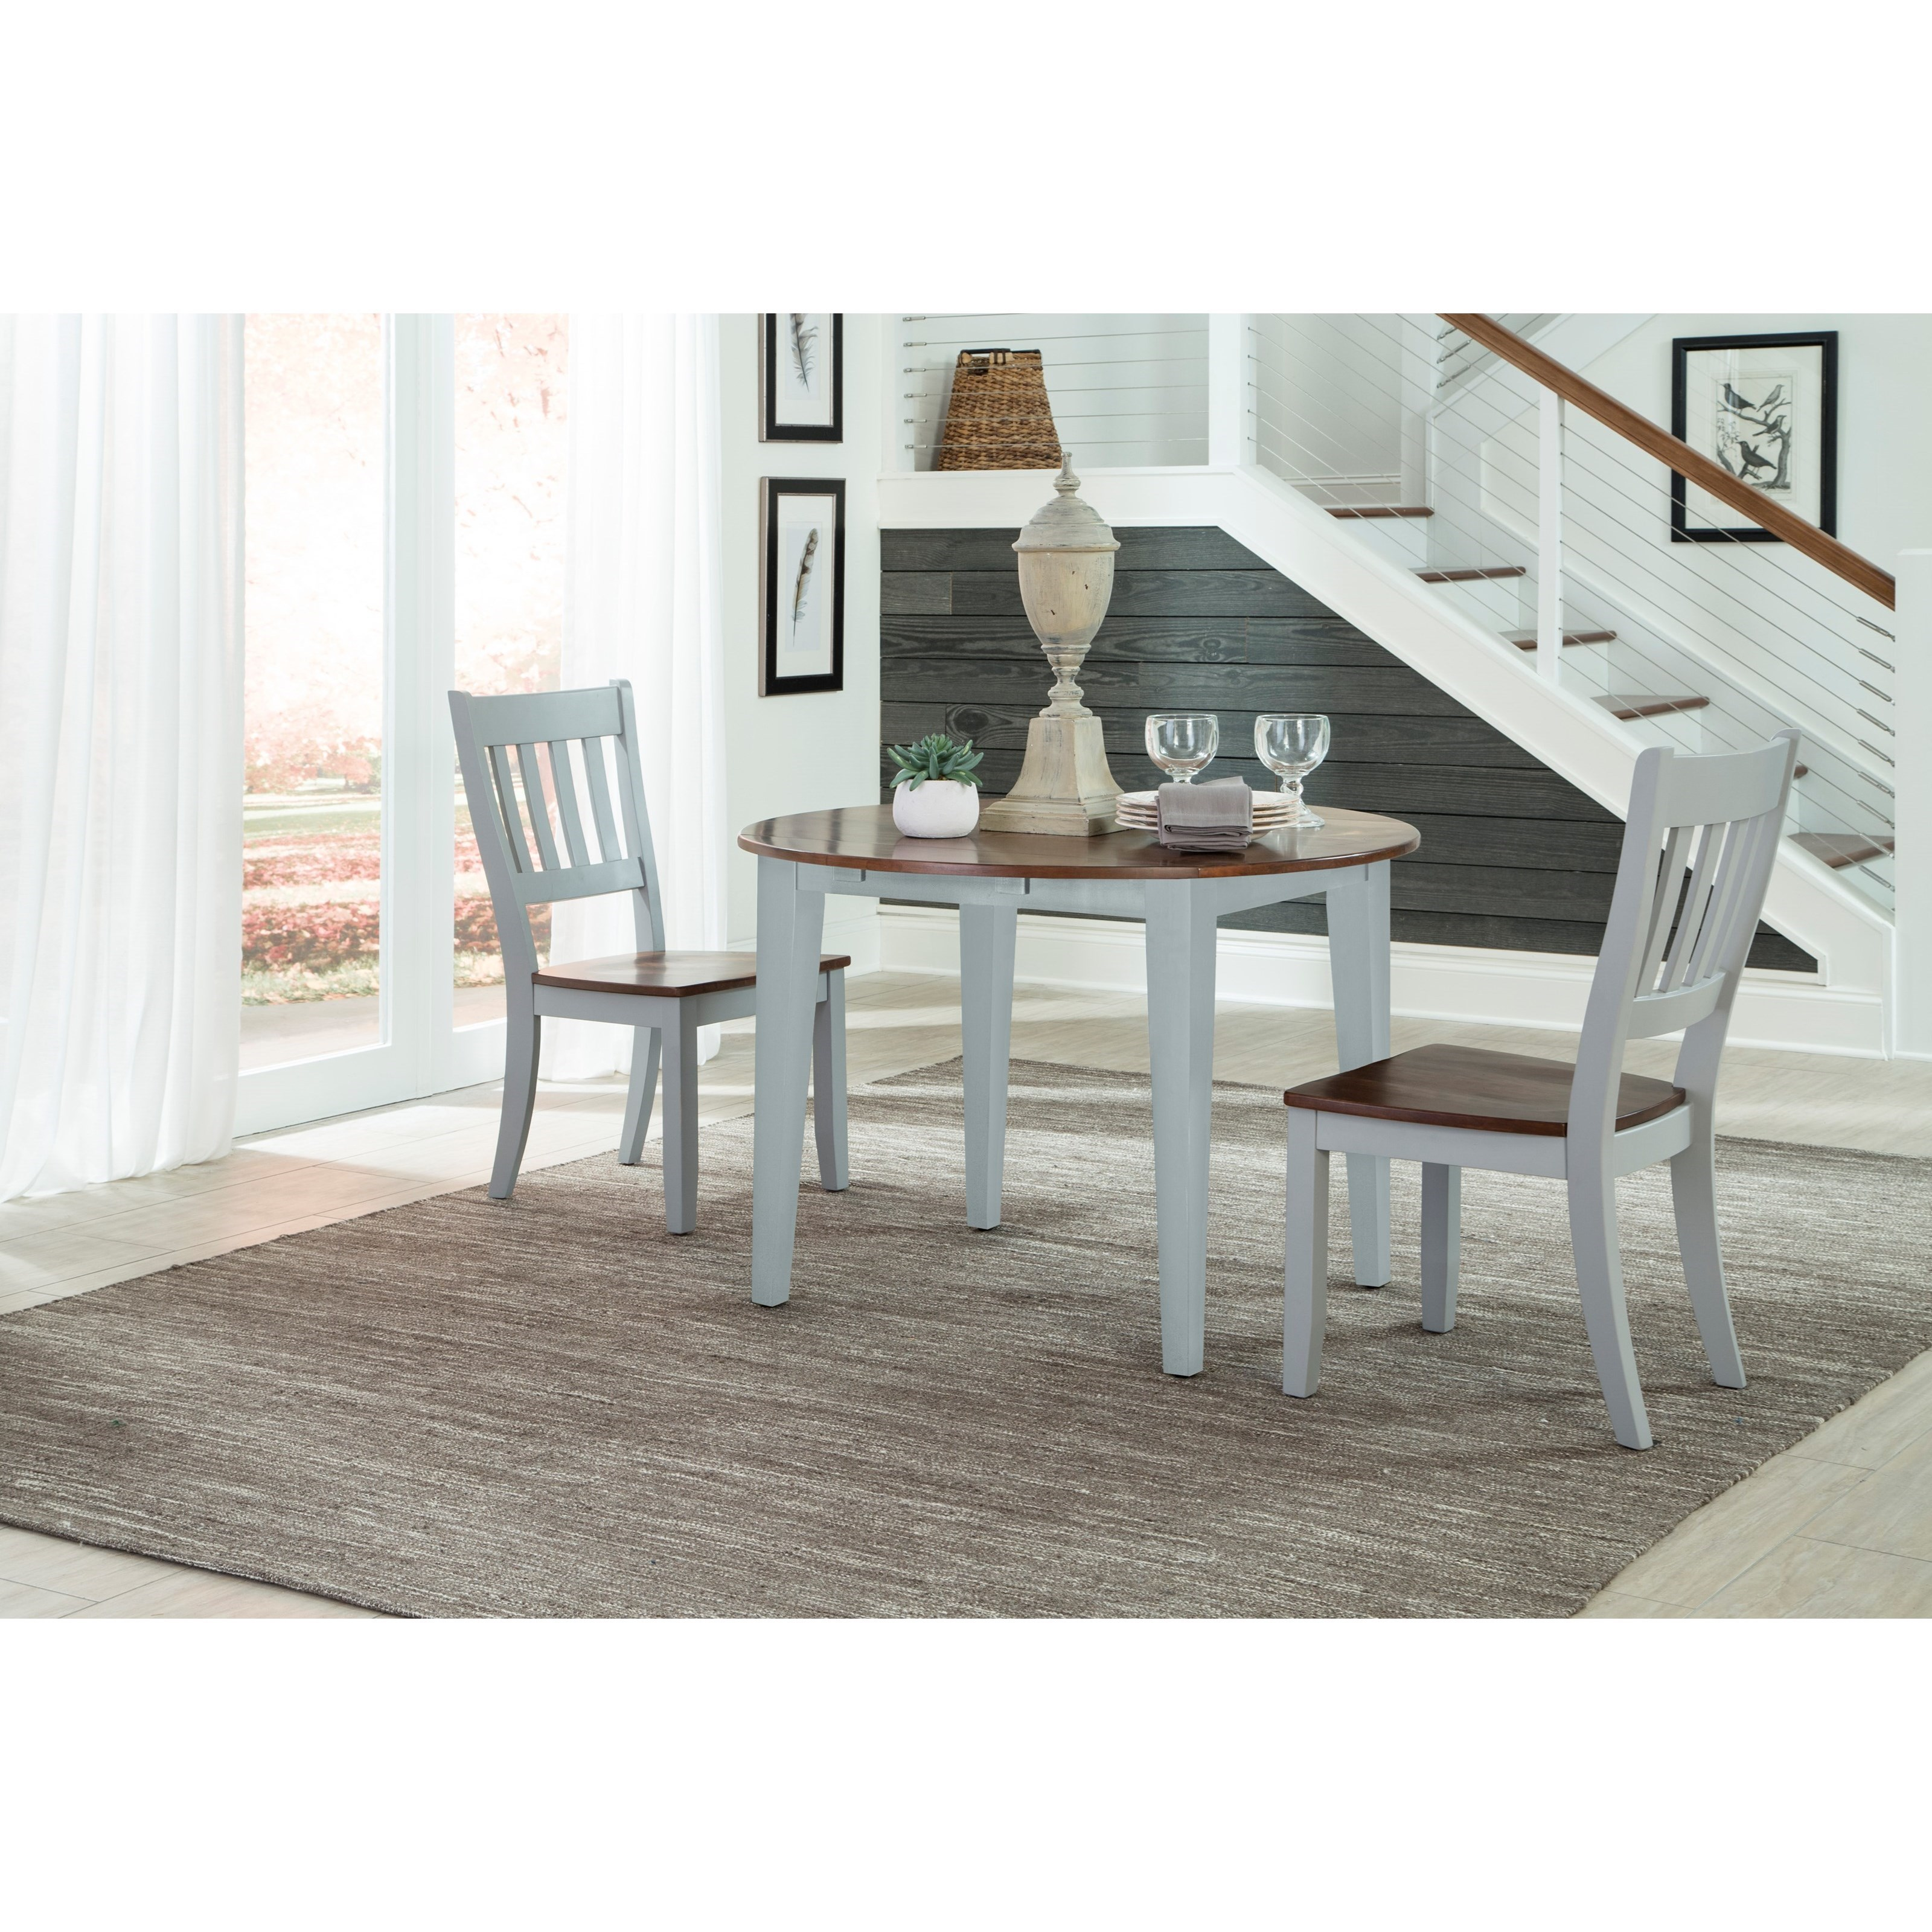 Intercon Small Space3 Piece Dining Set ...